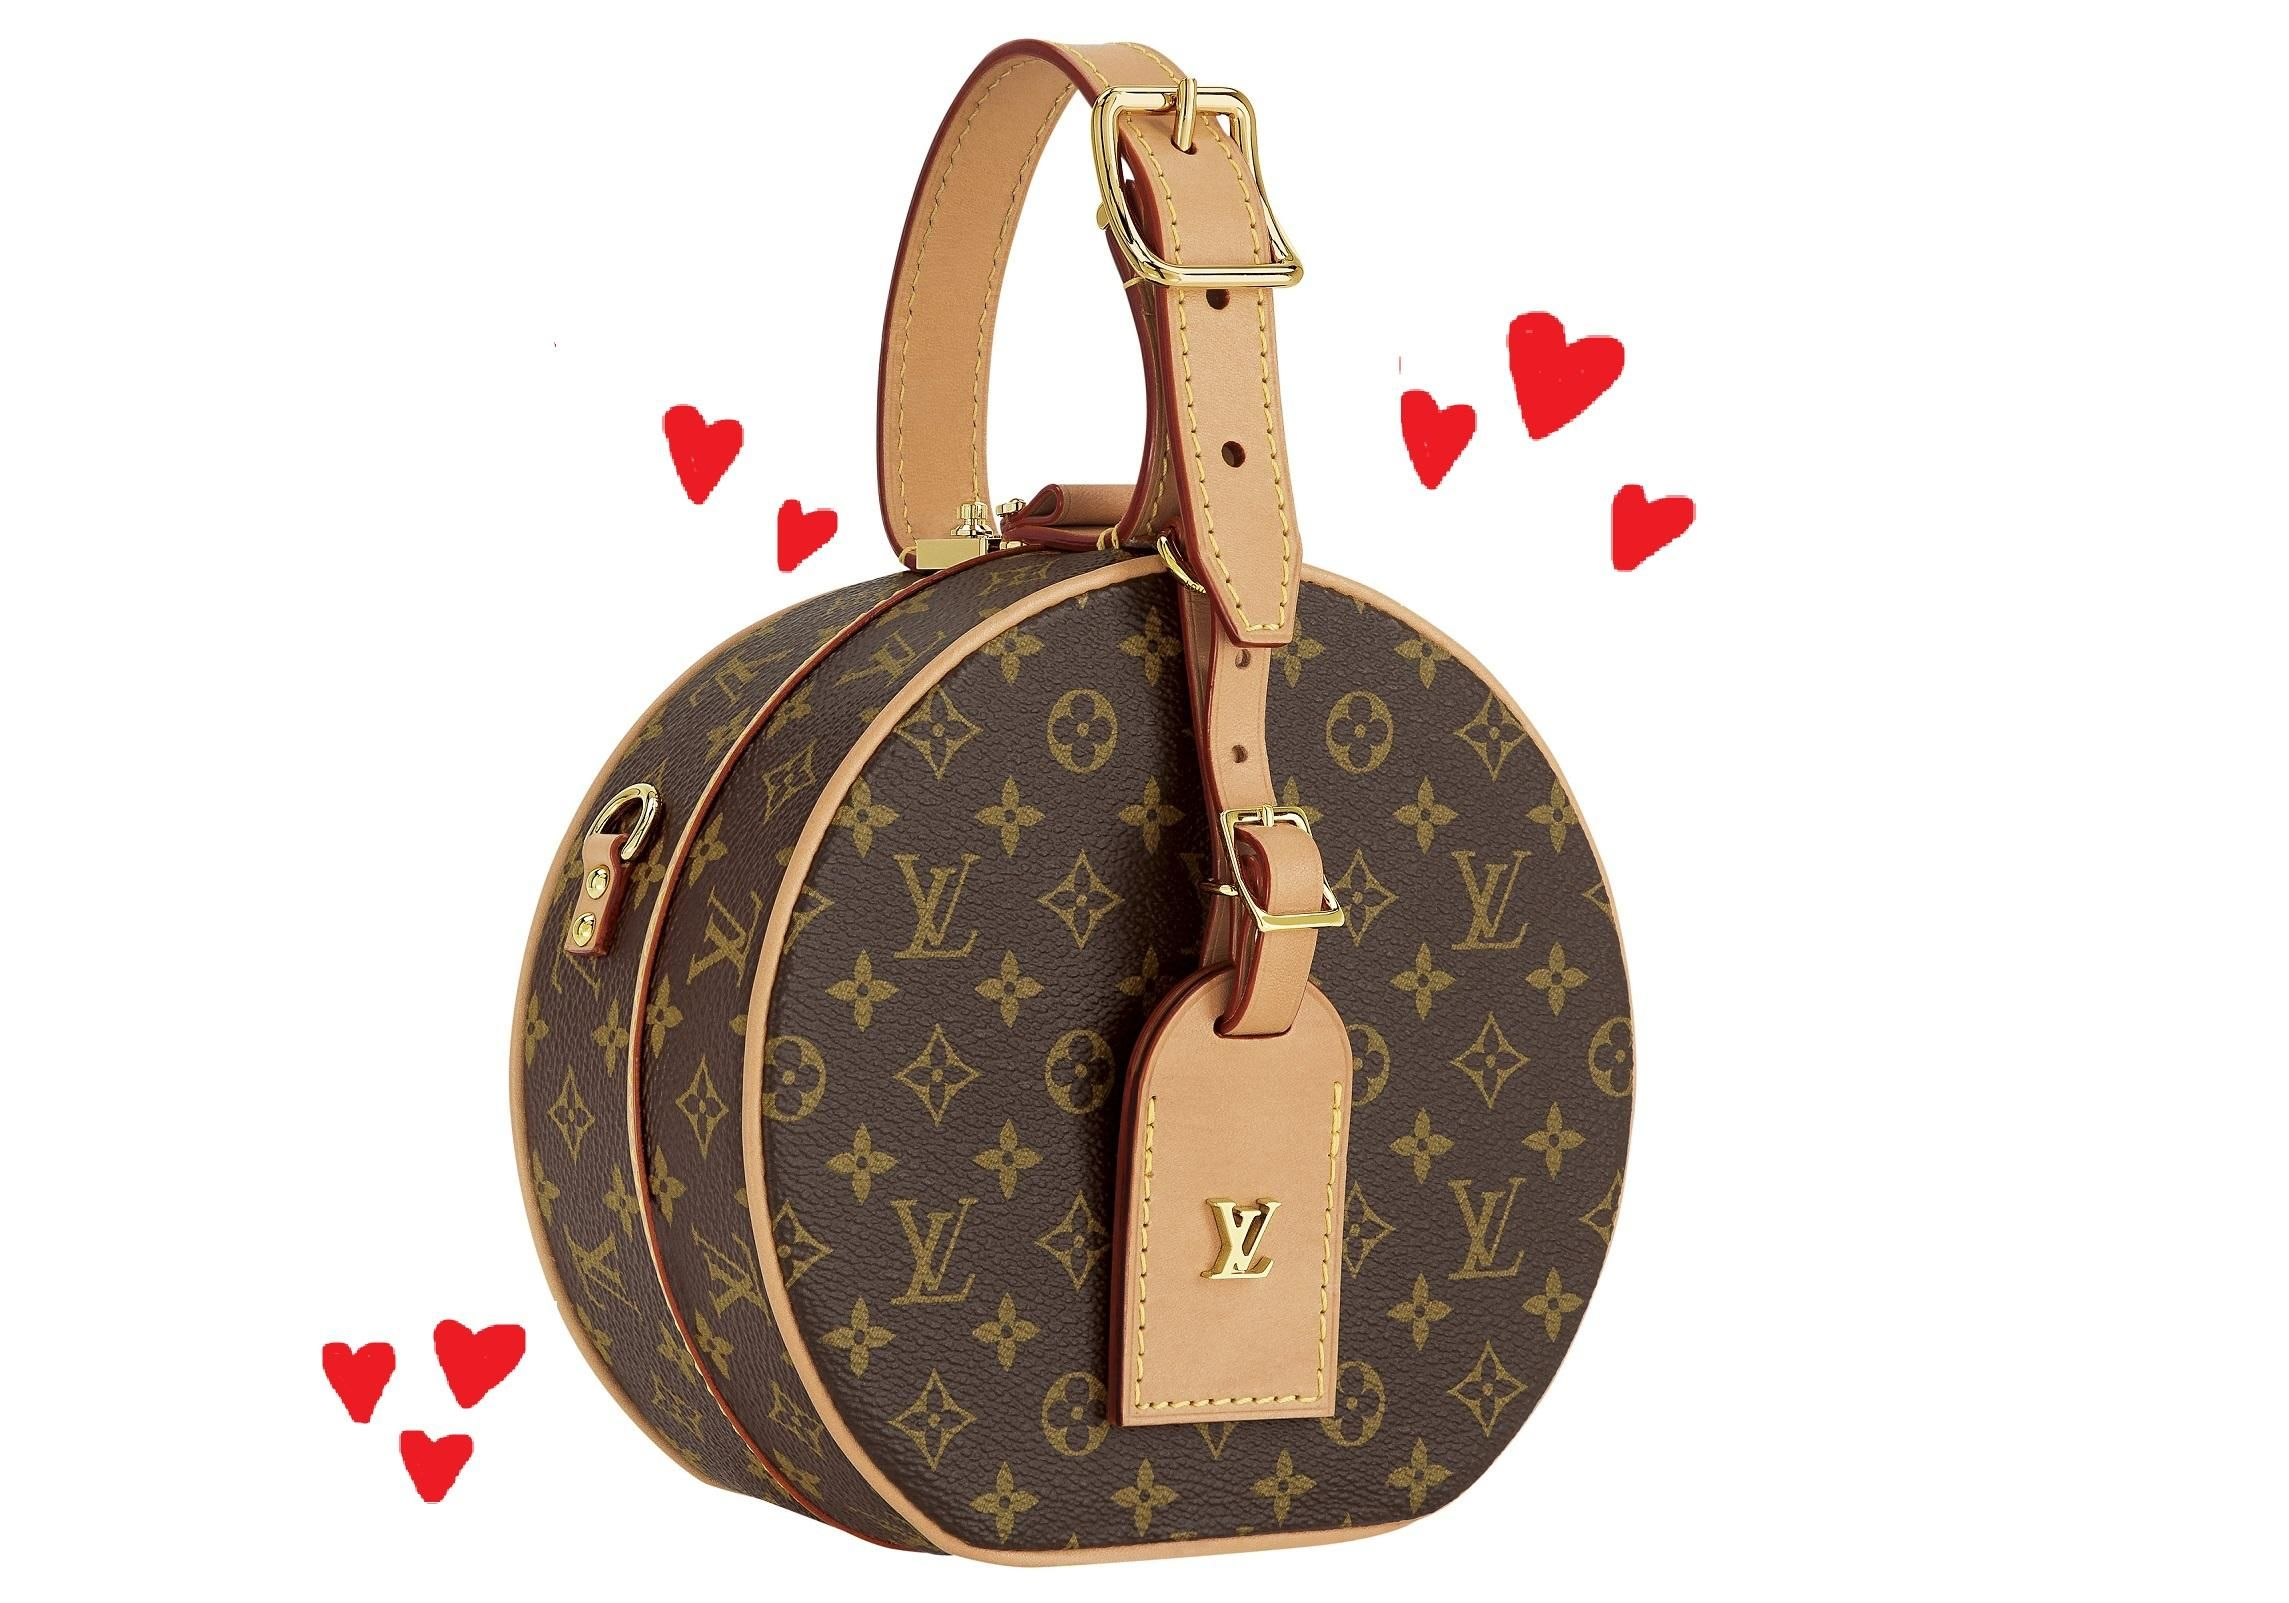 ce4b1dc485 It-pièce : le sac rond de Louis Vuitton | Mode | Fashion | Louis ...